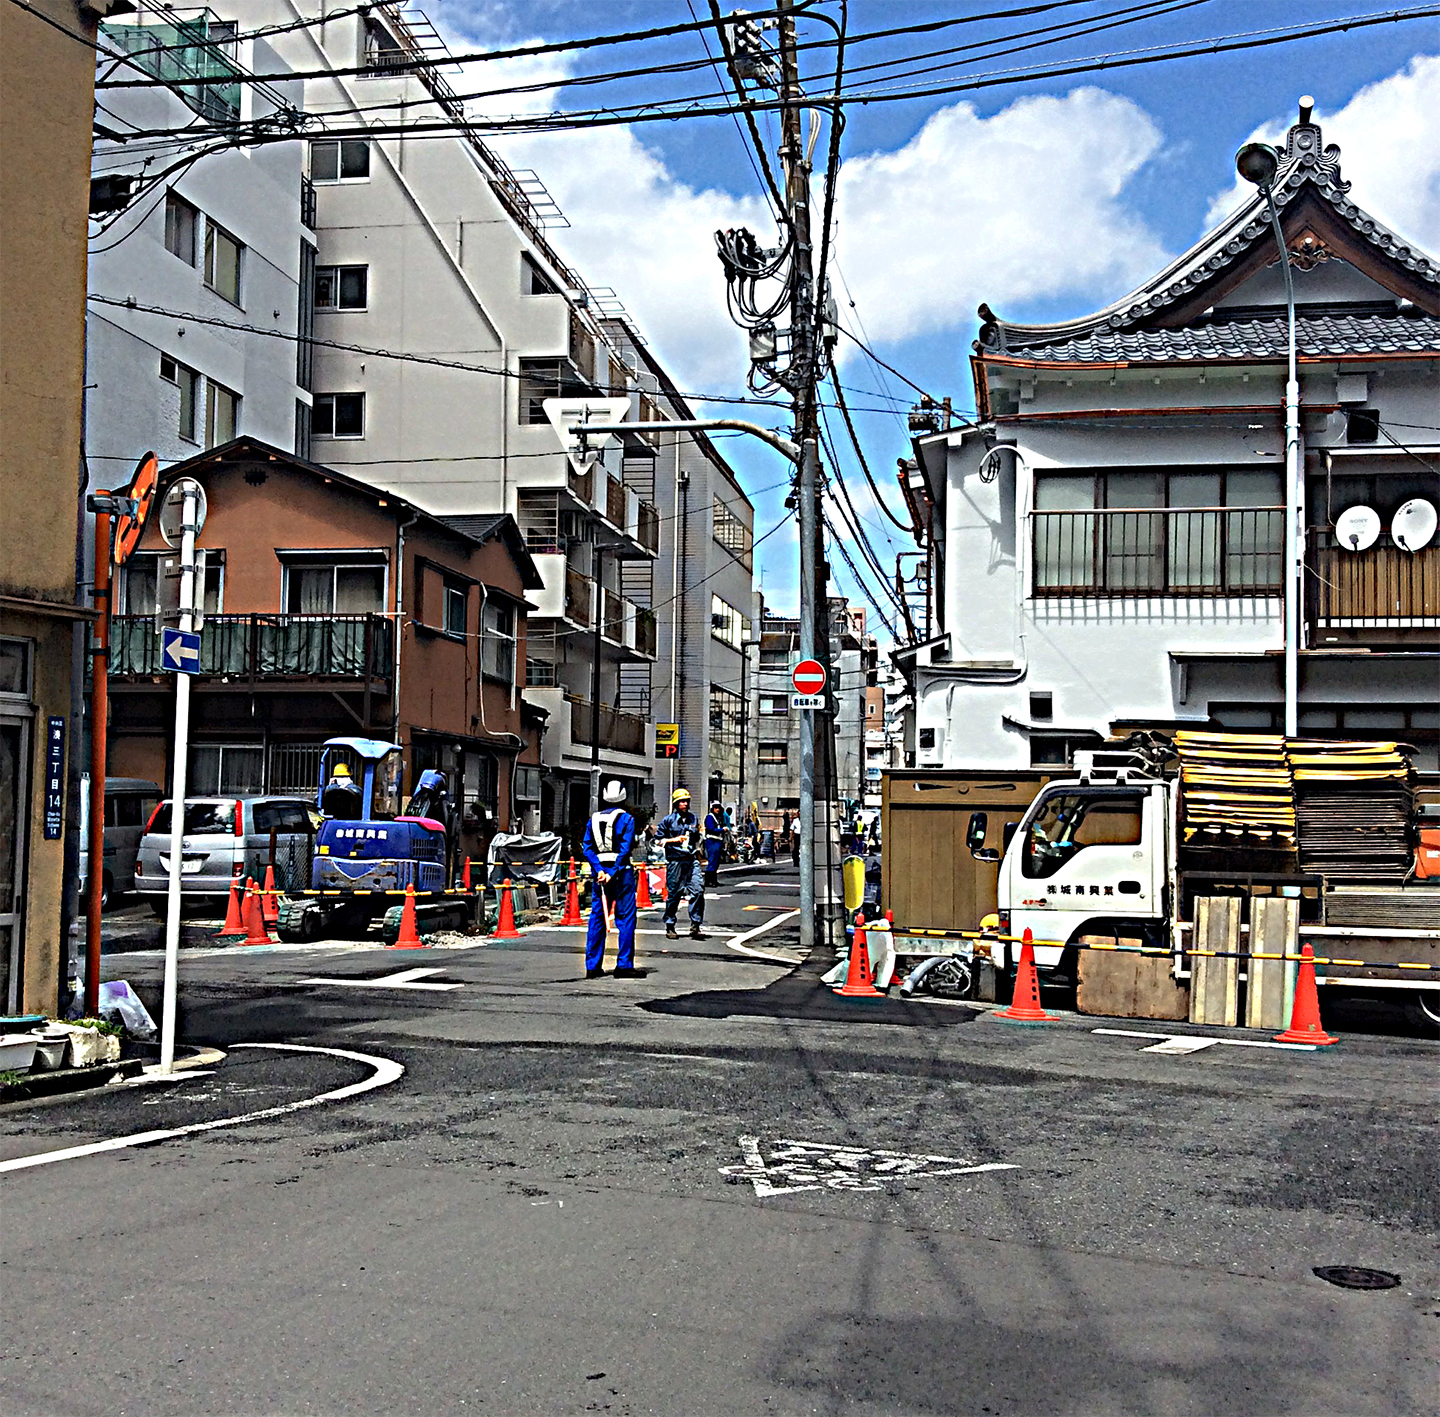 a traditional Japanese building nestled between modern blocks of varying sizes at a cross road; a trafic policeman keepa a watchful eye on roadworks associated with a new building out of shot; central to the image is the array of cables on poles following each street.